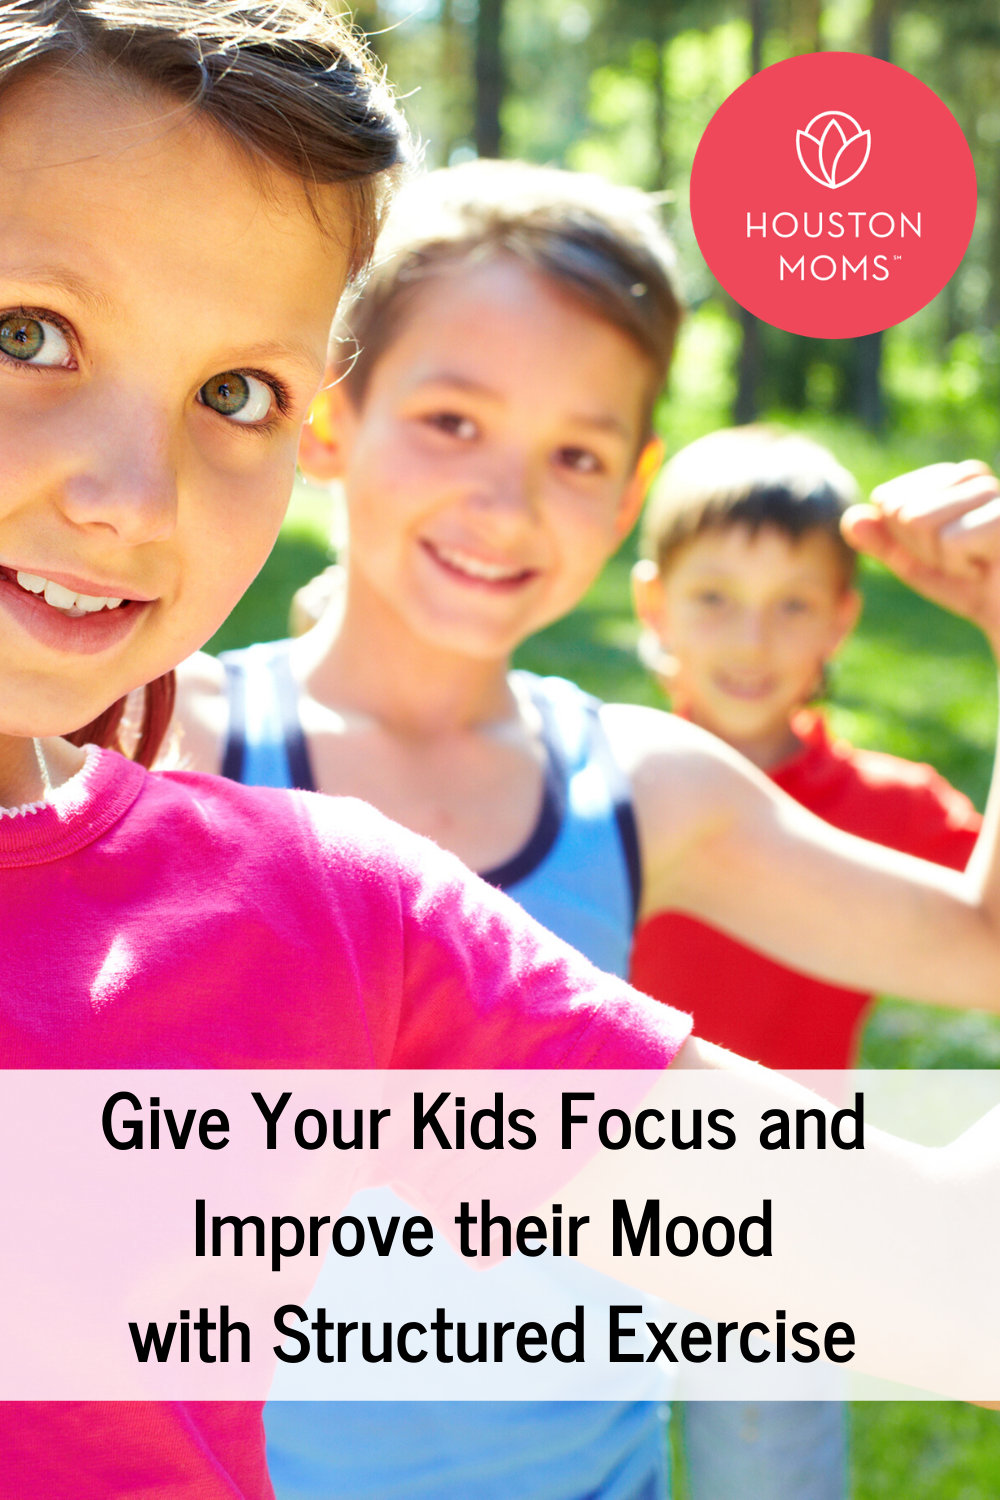 "Houston Moms ""Give Your Kid Focus and Improve Their Mood With Structured Exercise"" #houstonmoms #houstonmomsblog #momsaroundhouston"